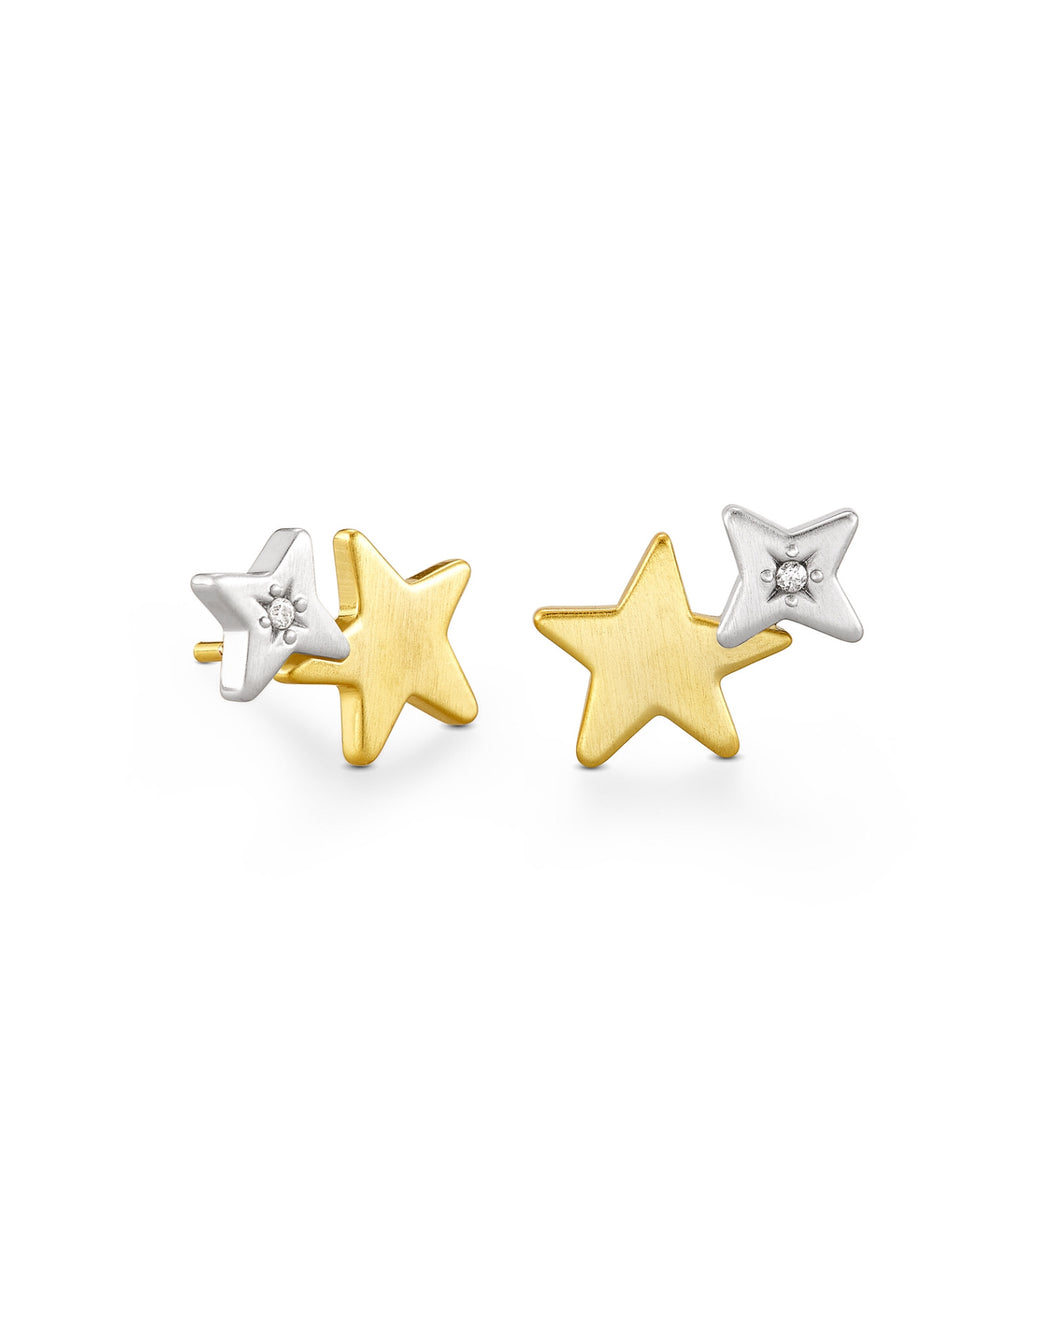 Kendra Scott: Jae Star Ear Climber In Mixed Metal - The Vogue Boutique